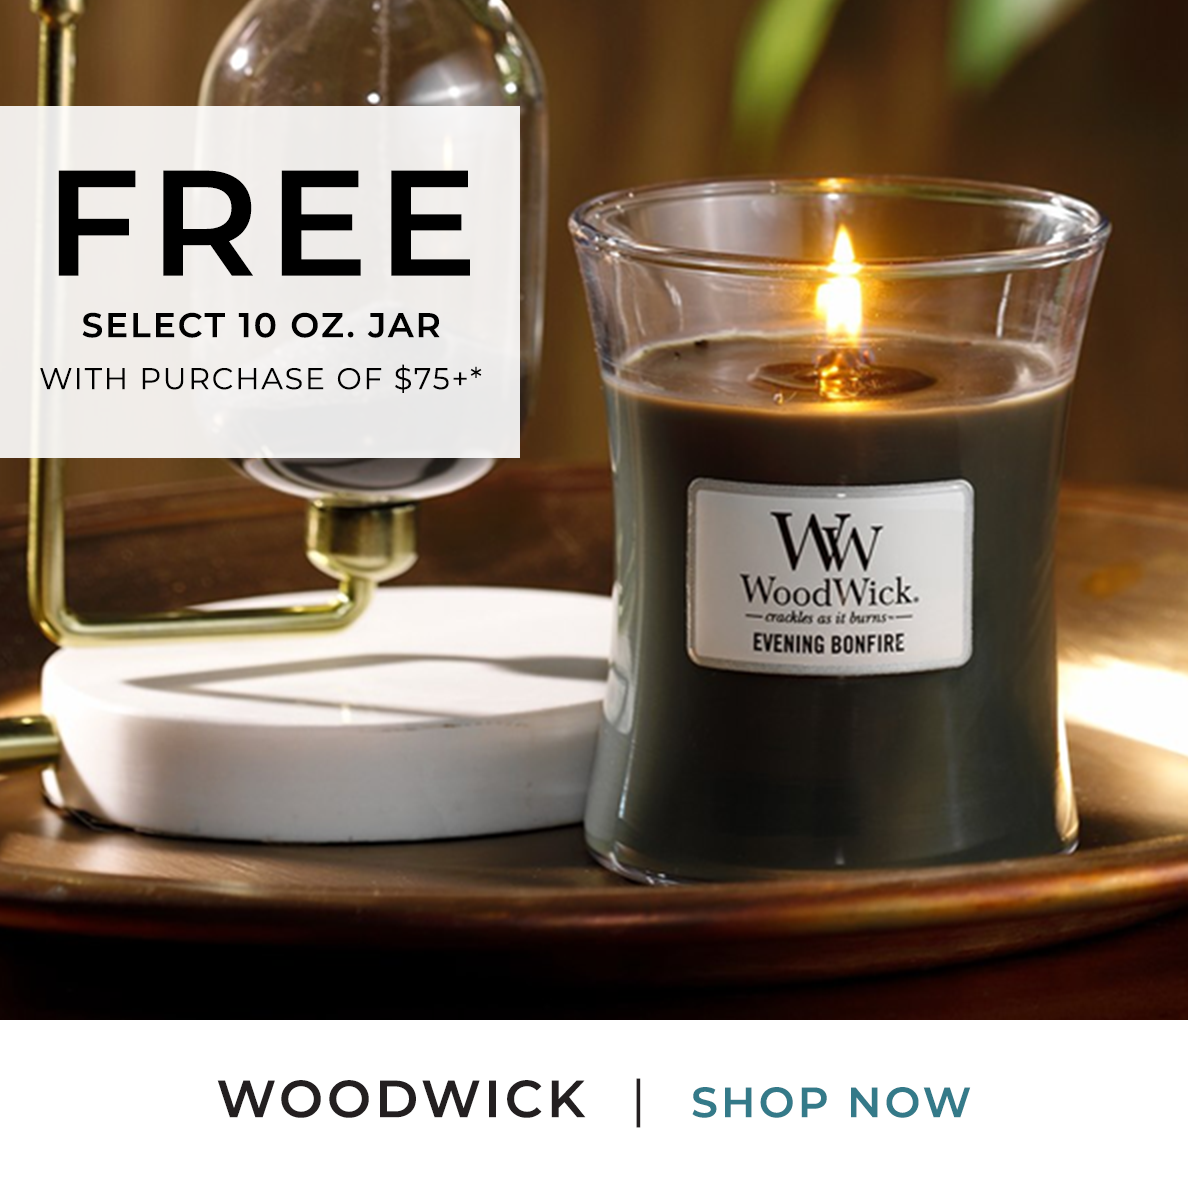 WoodWick - FREE Select 10 oz. Jar with purchase of $75+